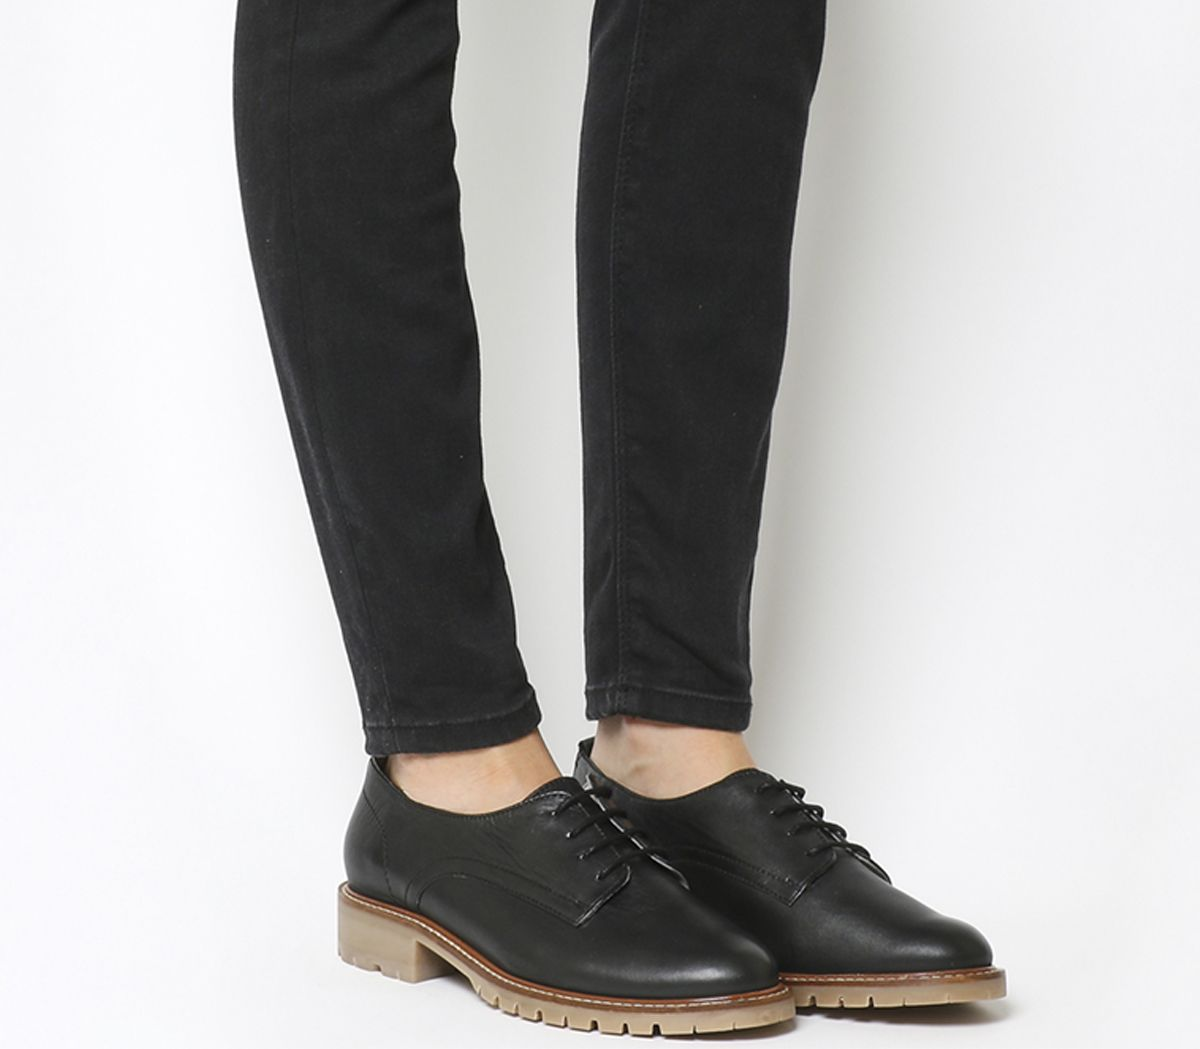 c8150da10bea81 Office Kennedy Lace Up Shoes Black Leather Gum Sole - Flats